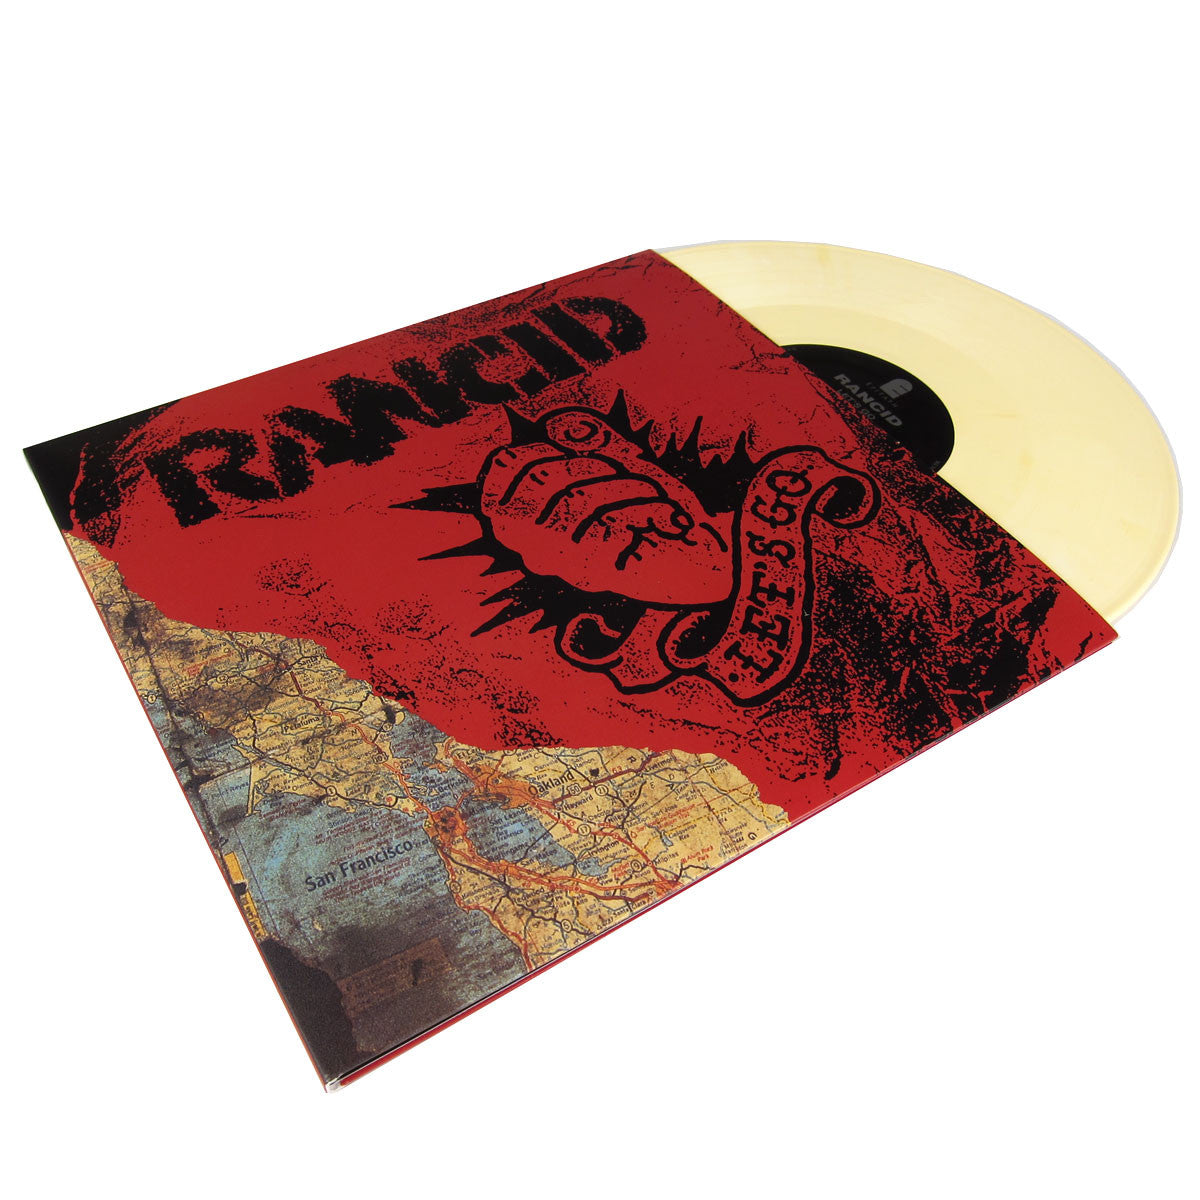 Rancid: Let's Go (Limited Edition Colored Vinyl) 2x10""